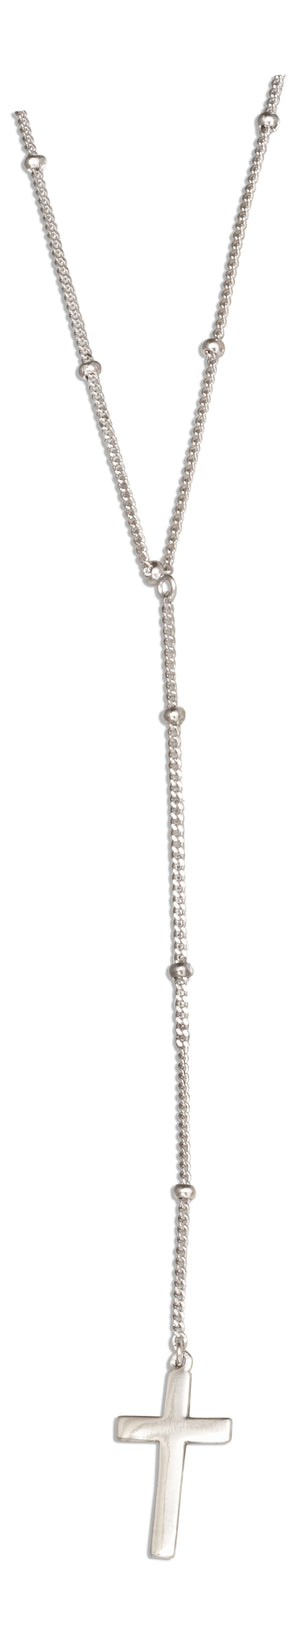 Sterling Silver 16 inch to 18 inch Adjustable Fine Beaded Chain with Dangling Cross Necklace